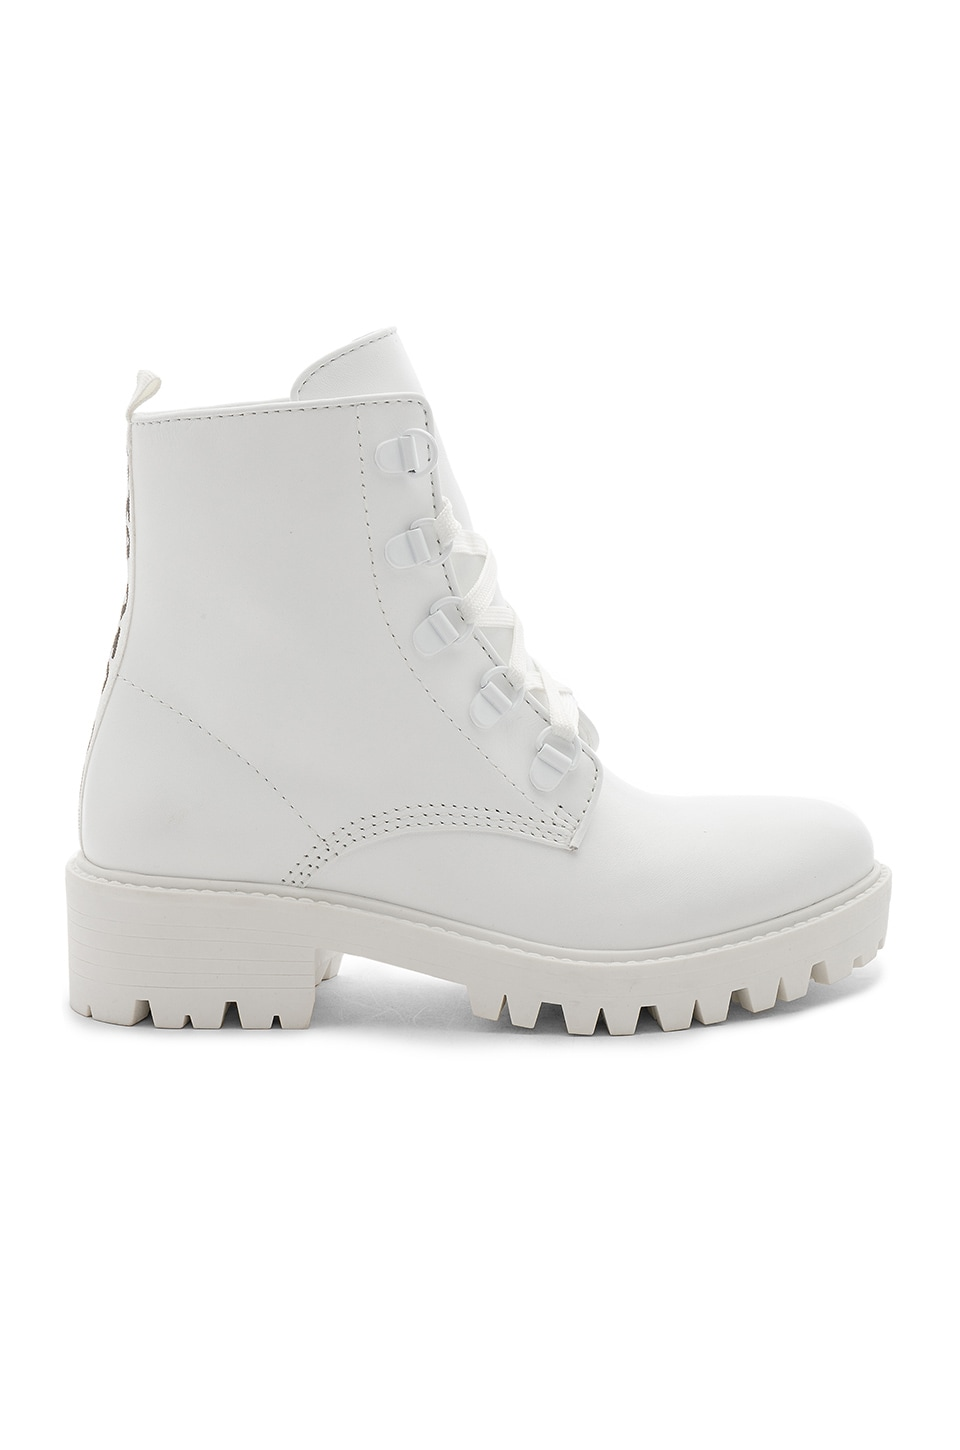 KENDALL + KYLIE Epic Boot in White